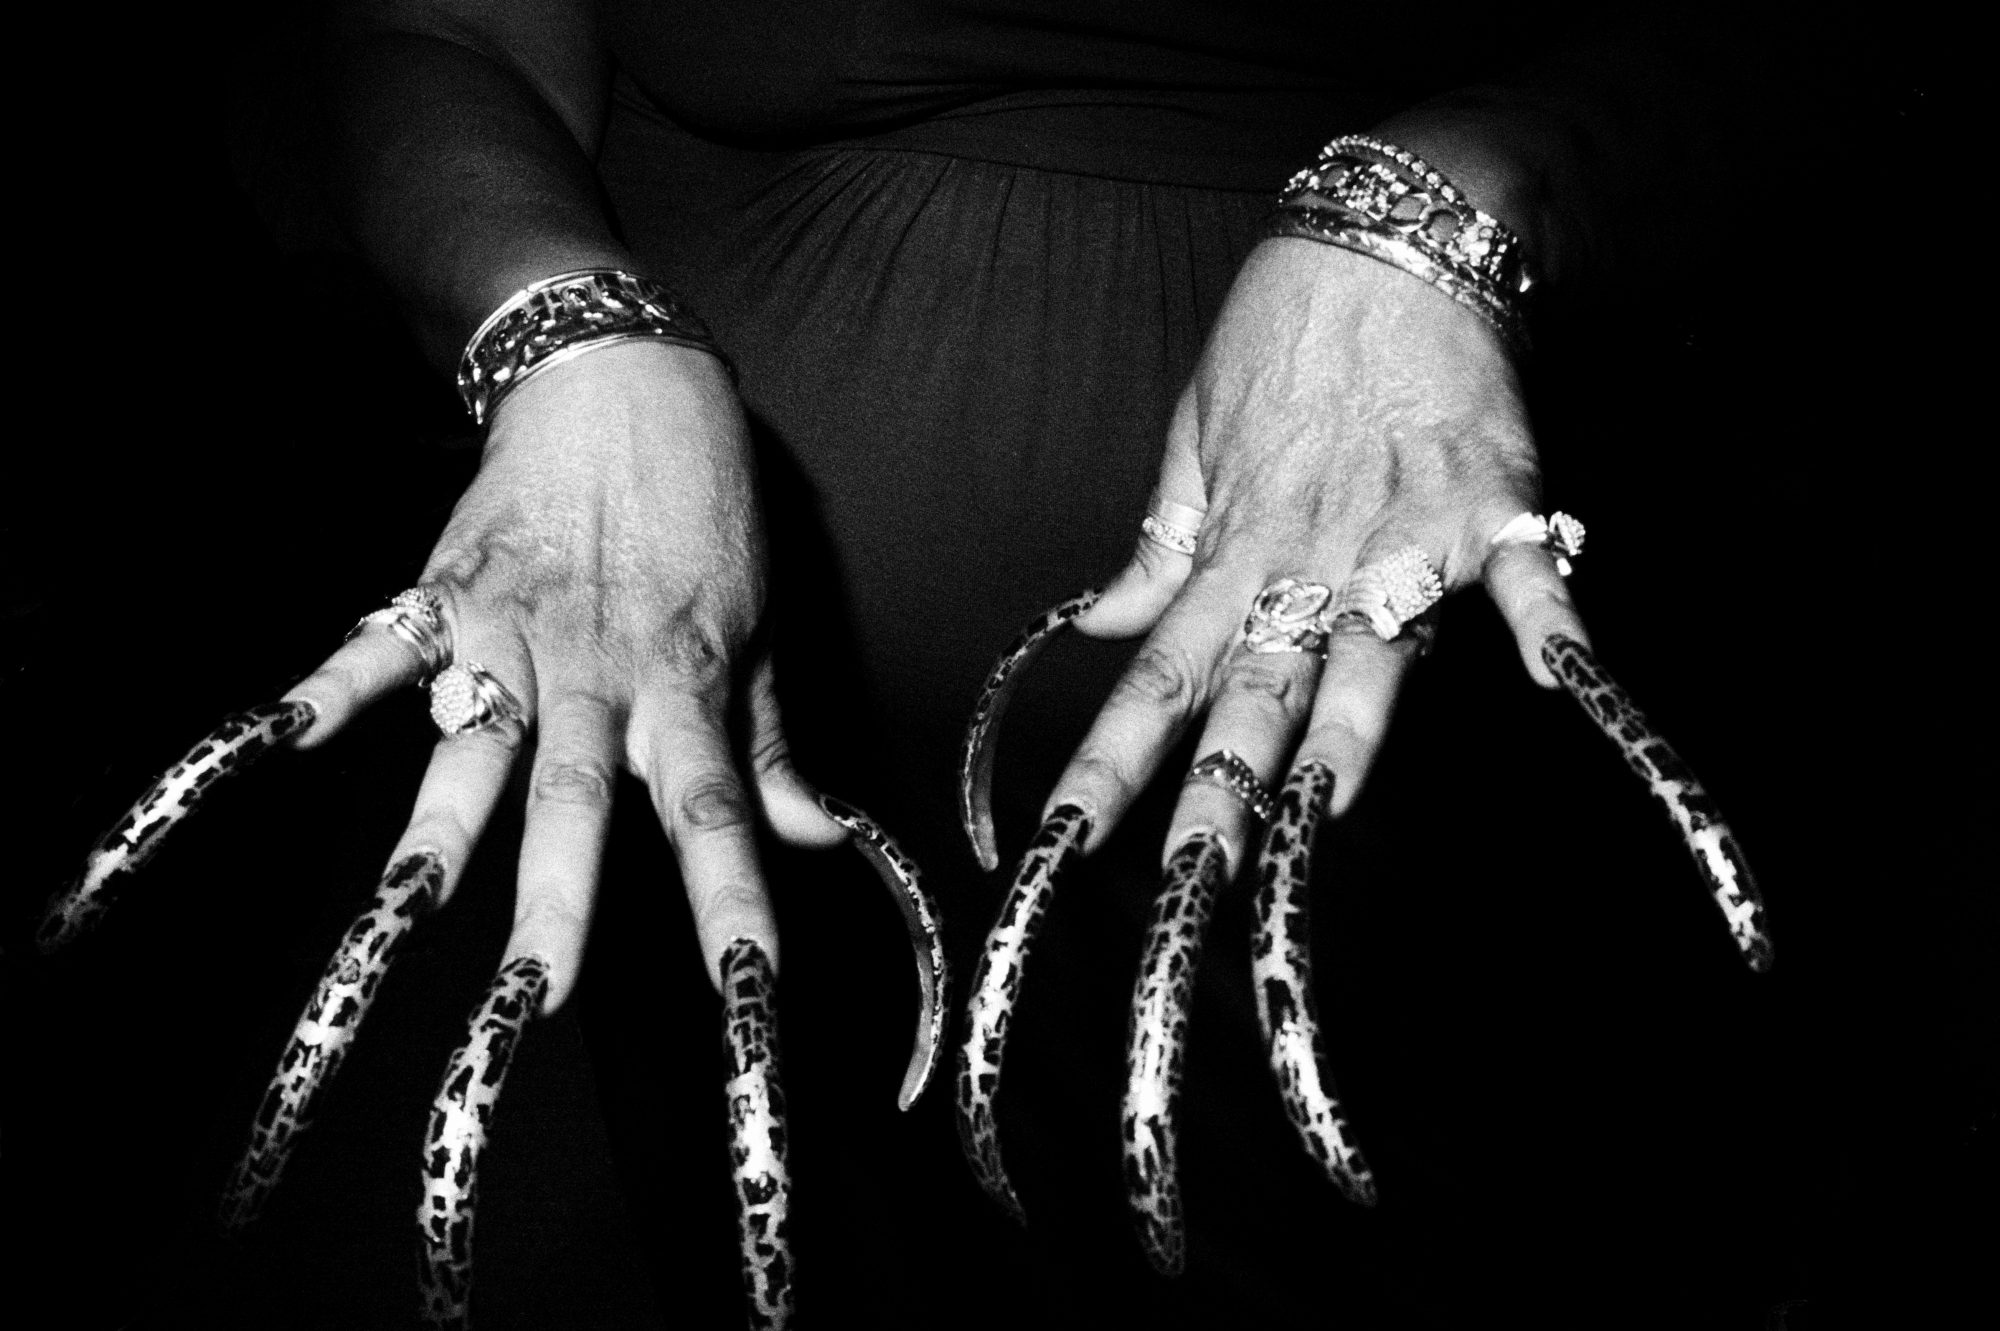 Fingernails. Downtown LA, 2012. Leica M9 and flash.